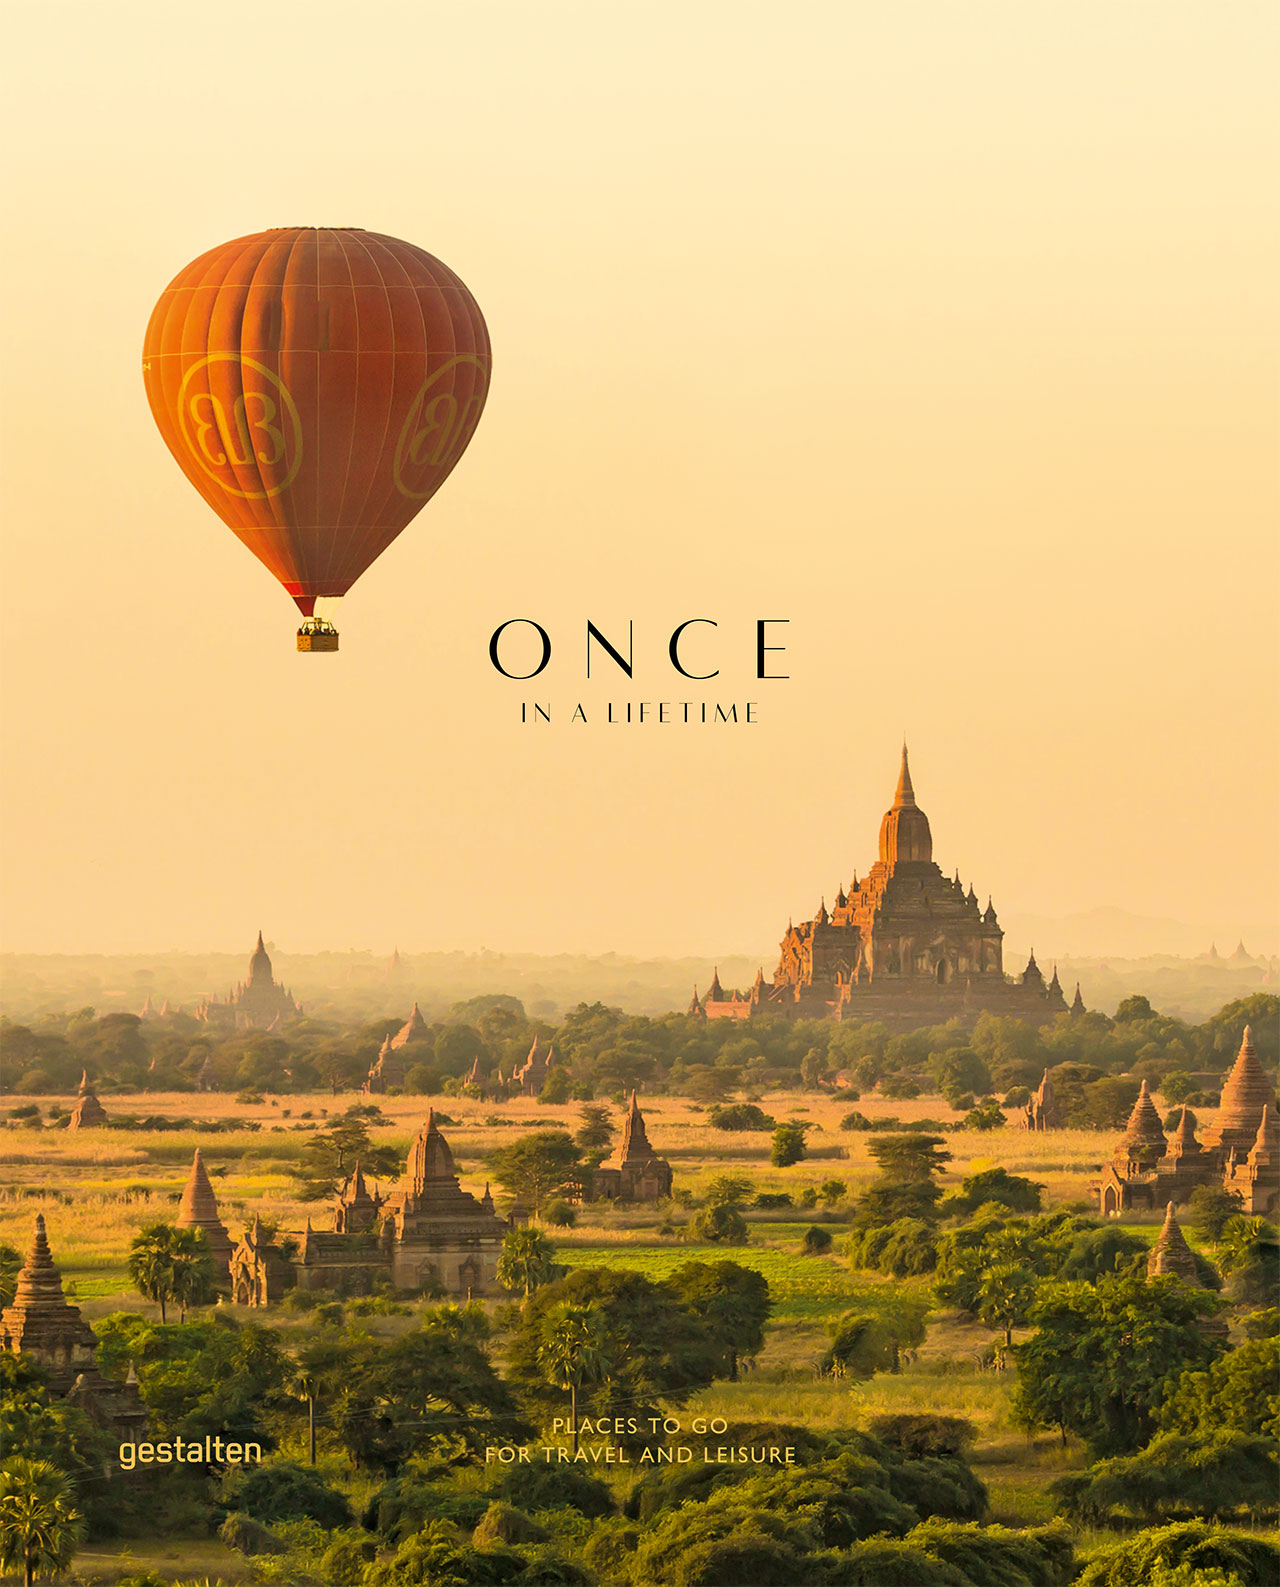 Front cover image: Balloons over Bagan. Photography by Ken Spence, from Once in a Lifetime Vol. 2, Copyright Gestalten 2015.